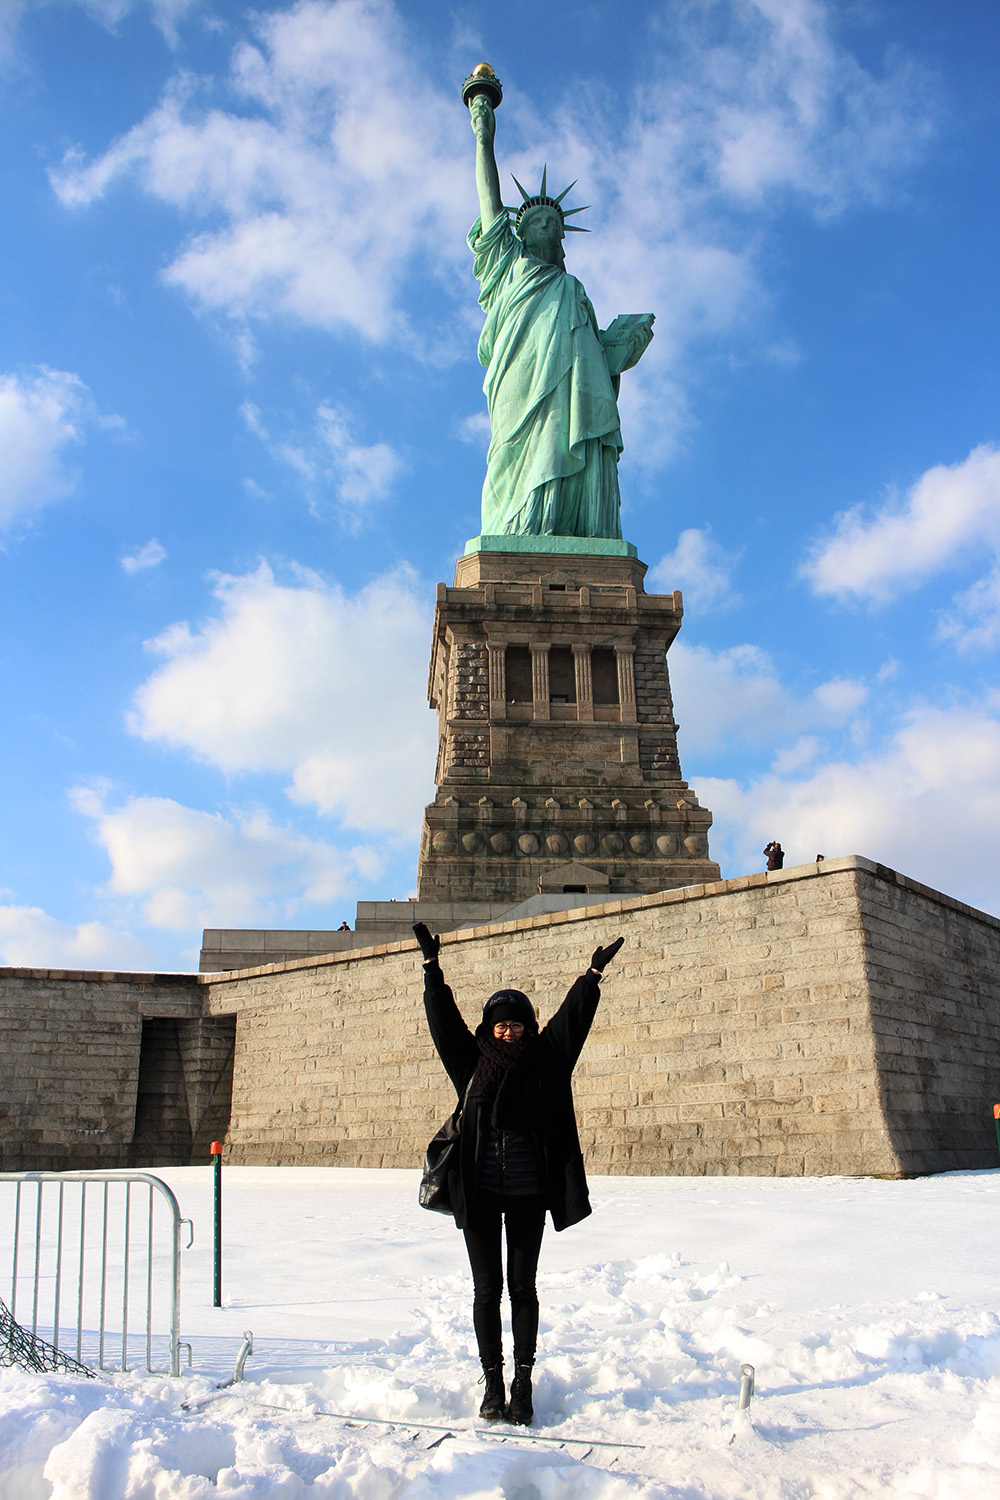 IHEARTALICE.DE – Fashion & Travel-Blog by Alice M. Huynh from Germany: New York / NYC Travel  & Food Diary – Leben in New York: Freiheitsstatue / Lady Liberty / Statue of Liberty